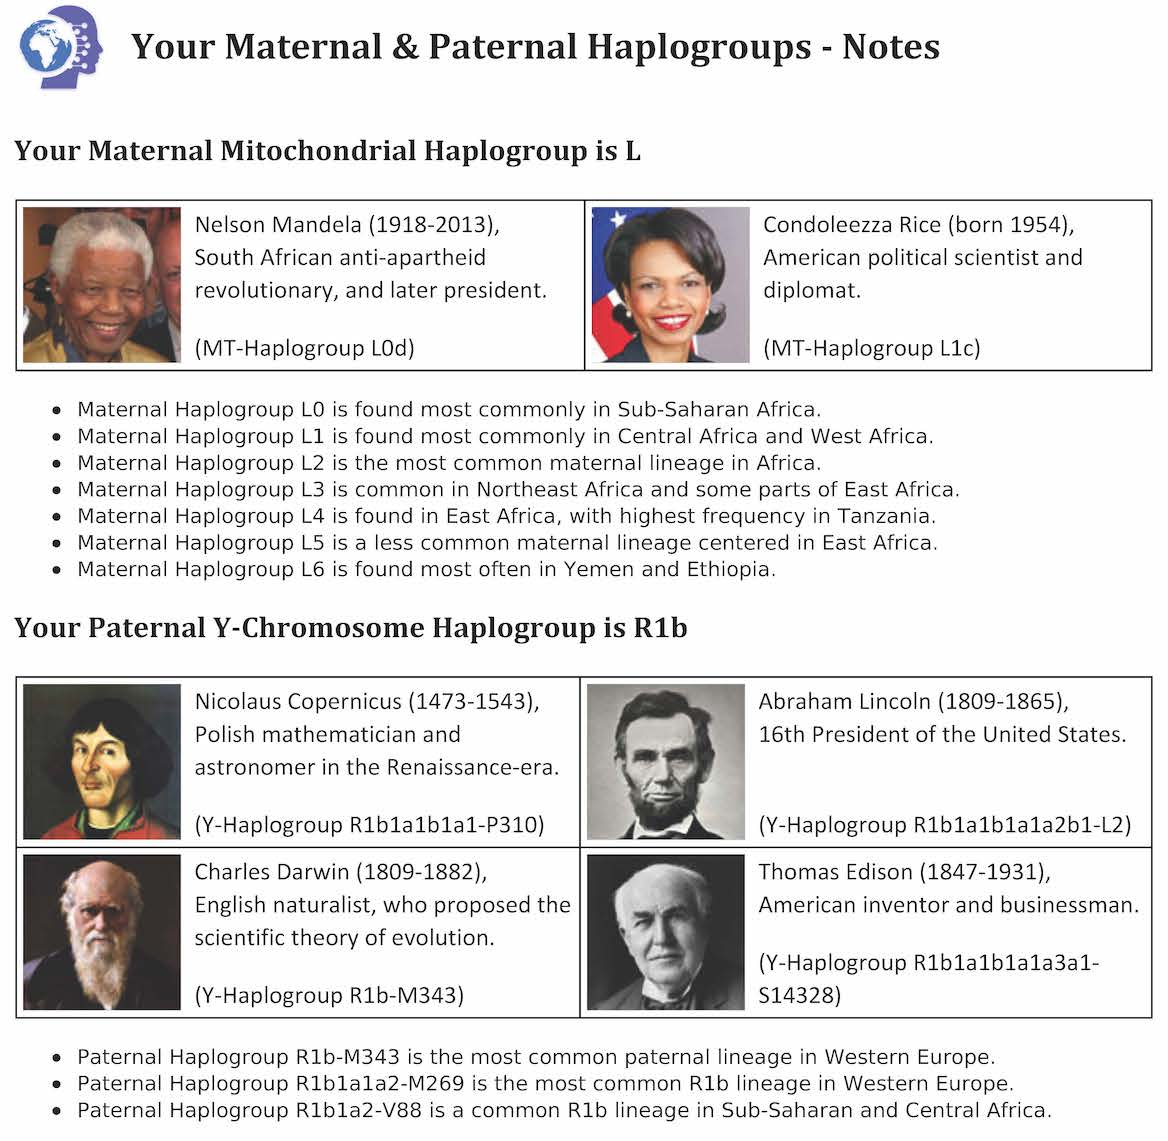 Haplogroup section compares your DNA to historical figures